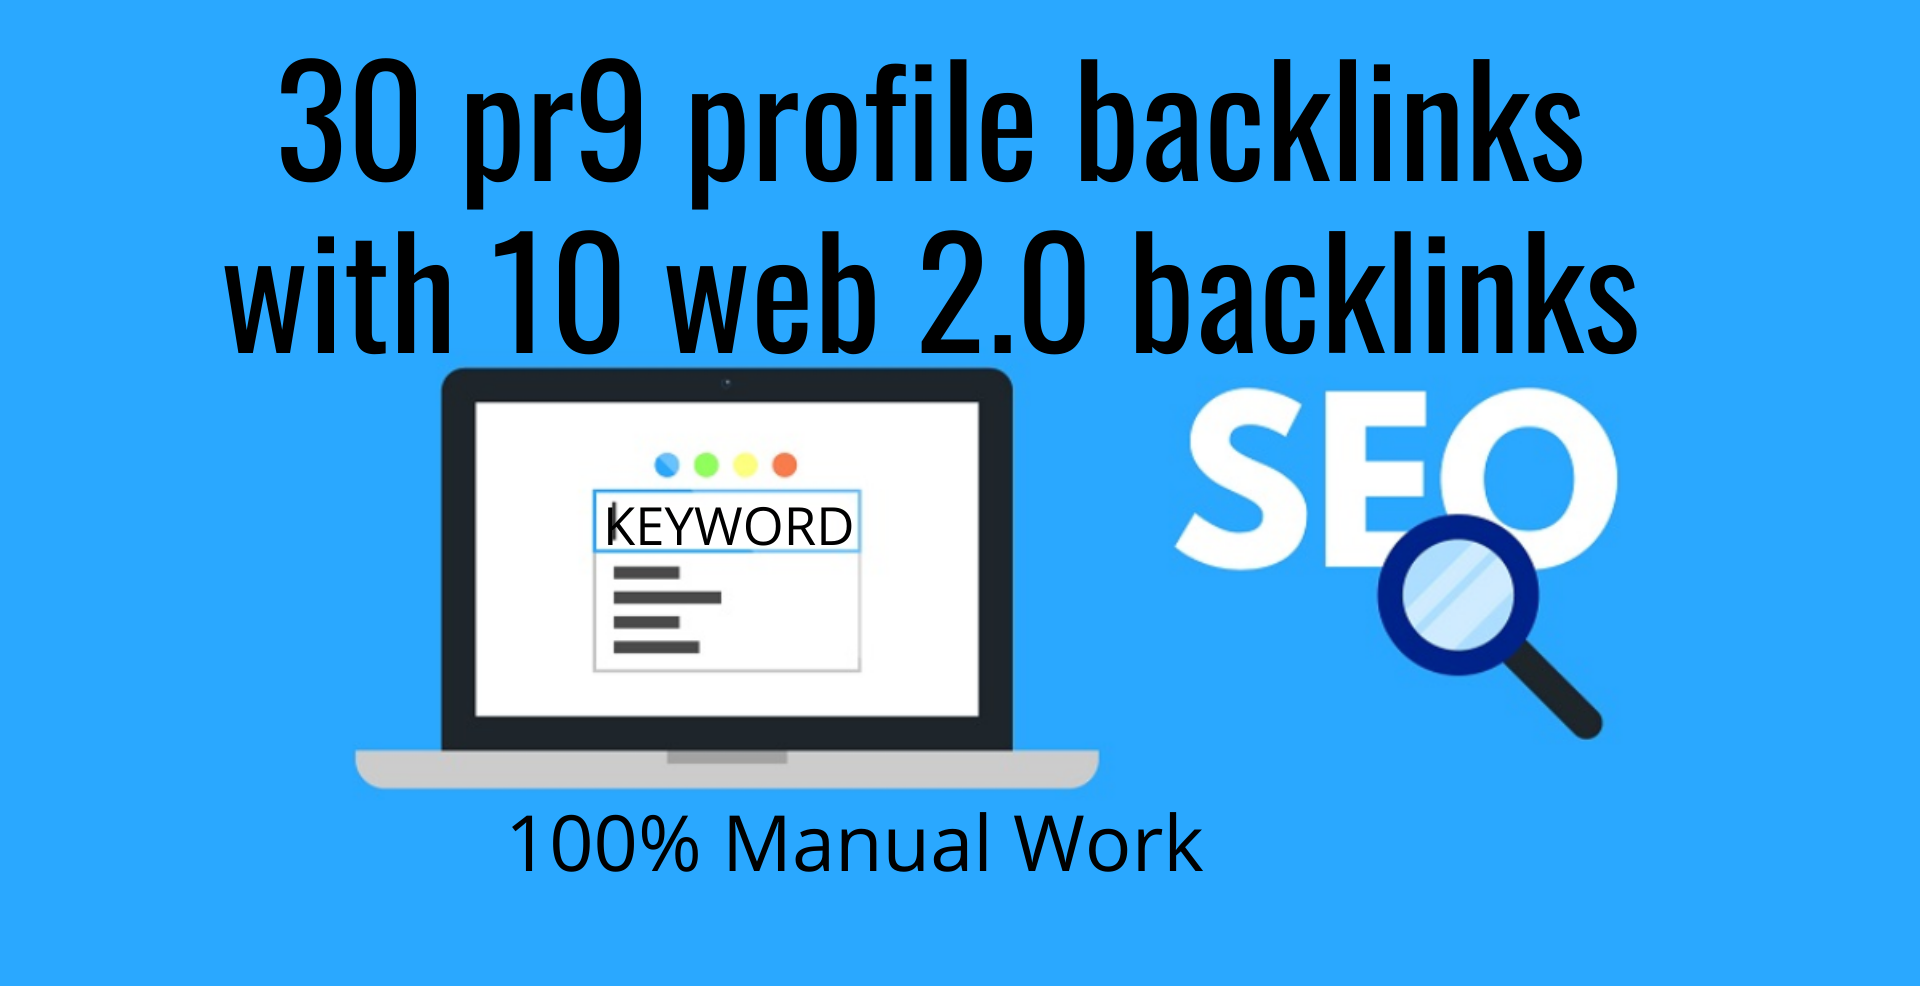 create 30 pr9 profile backlinks with 10 web 2.0 backlinks